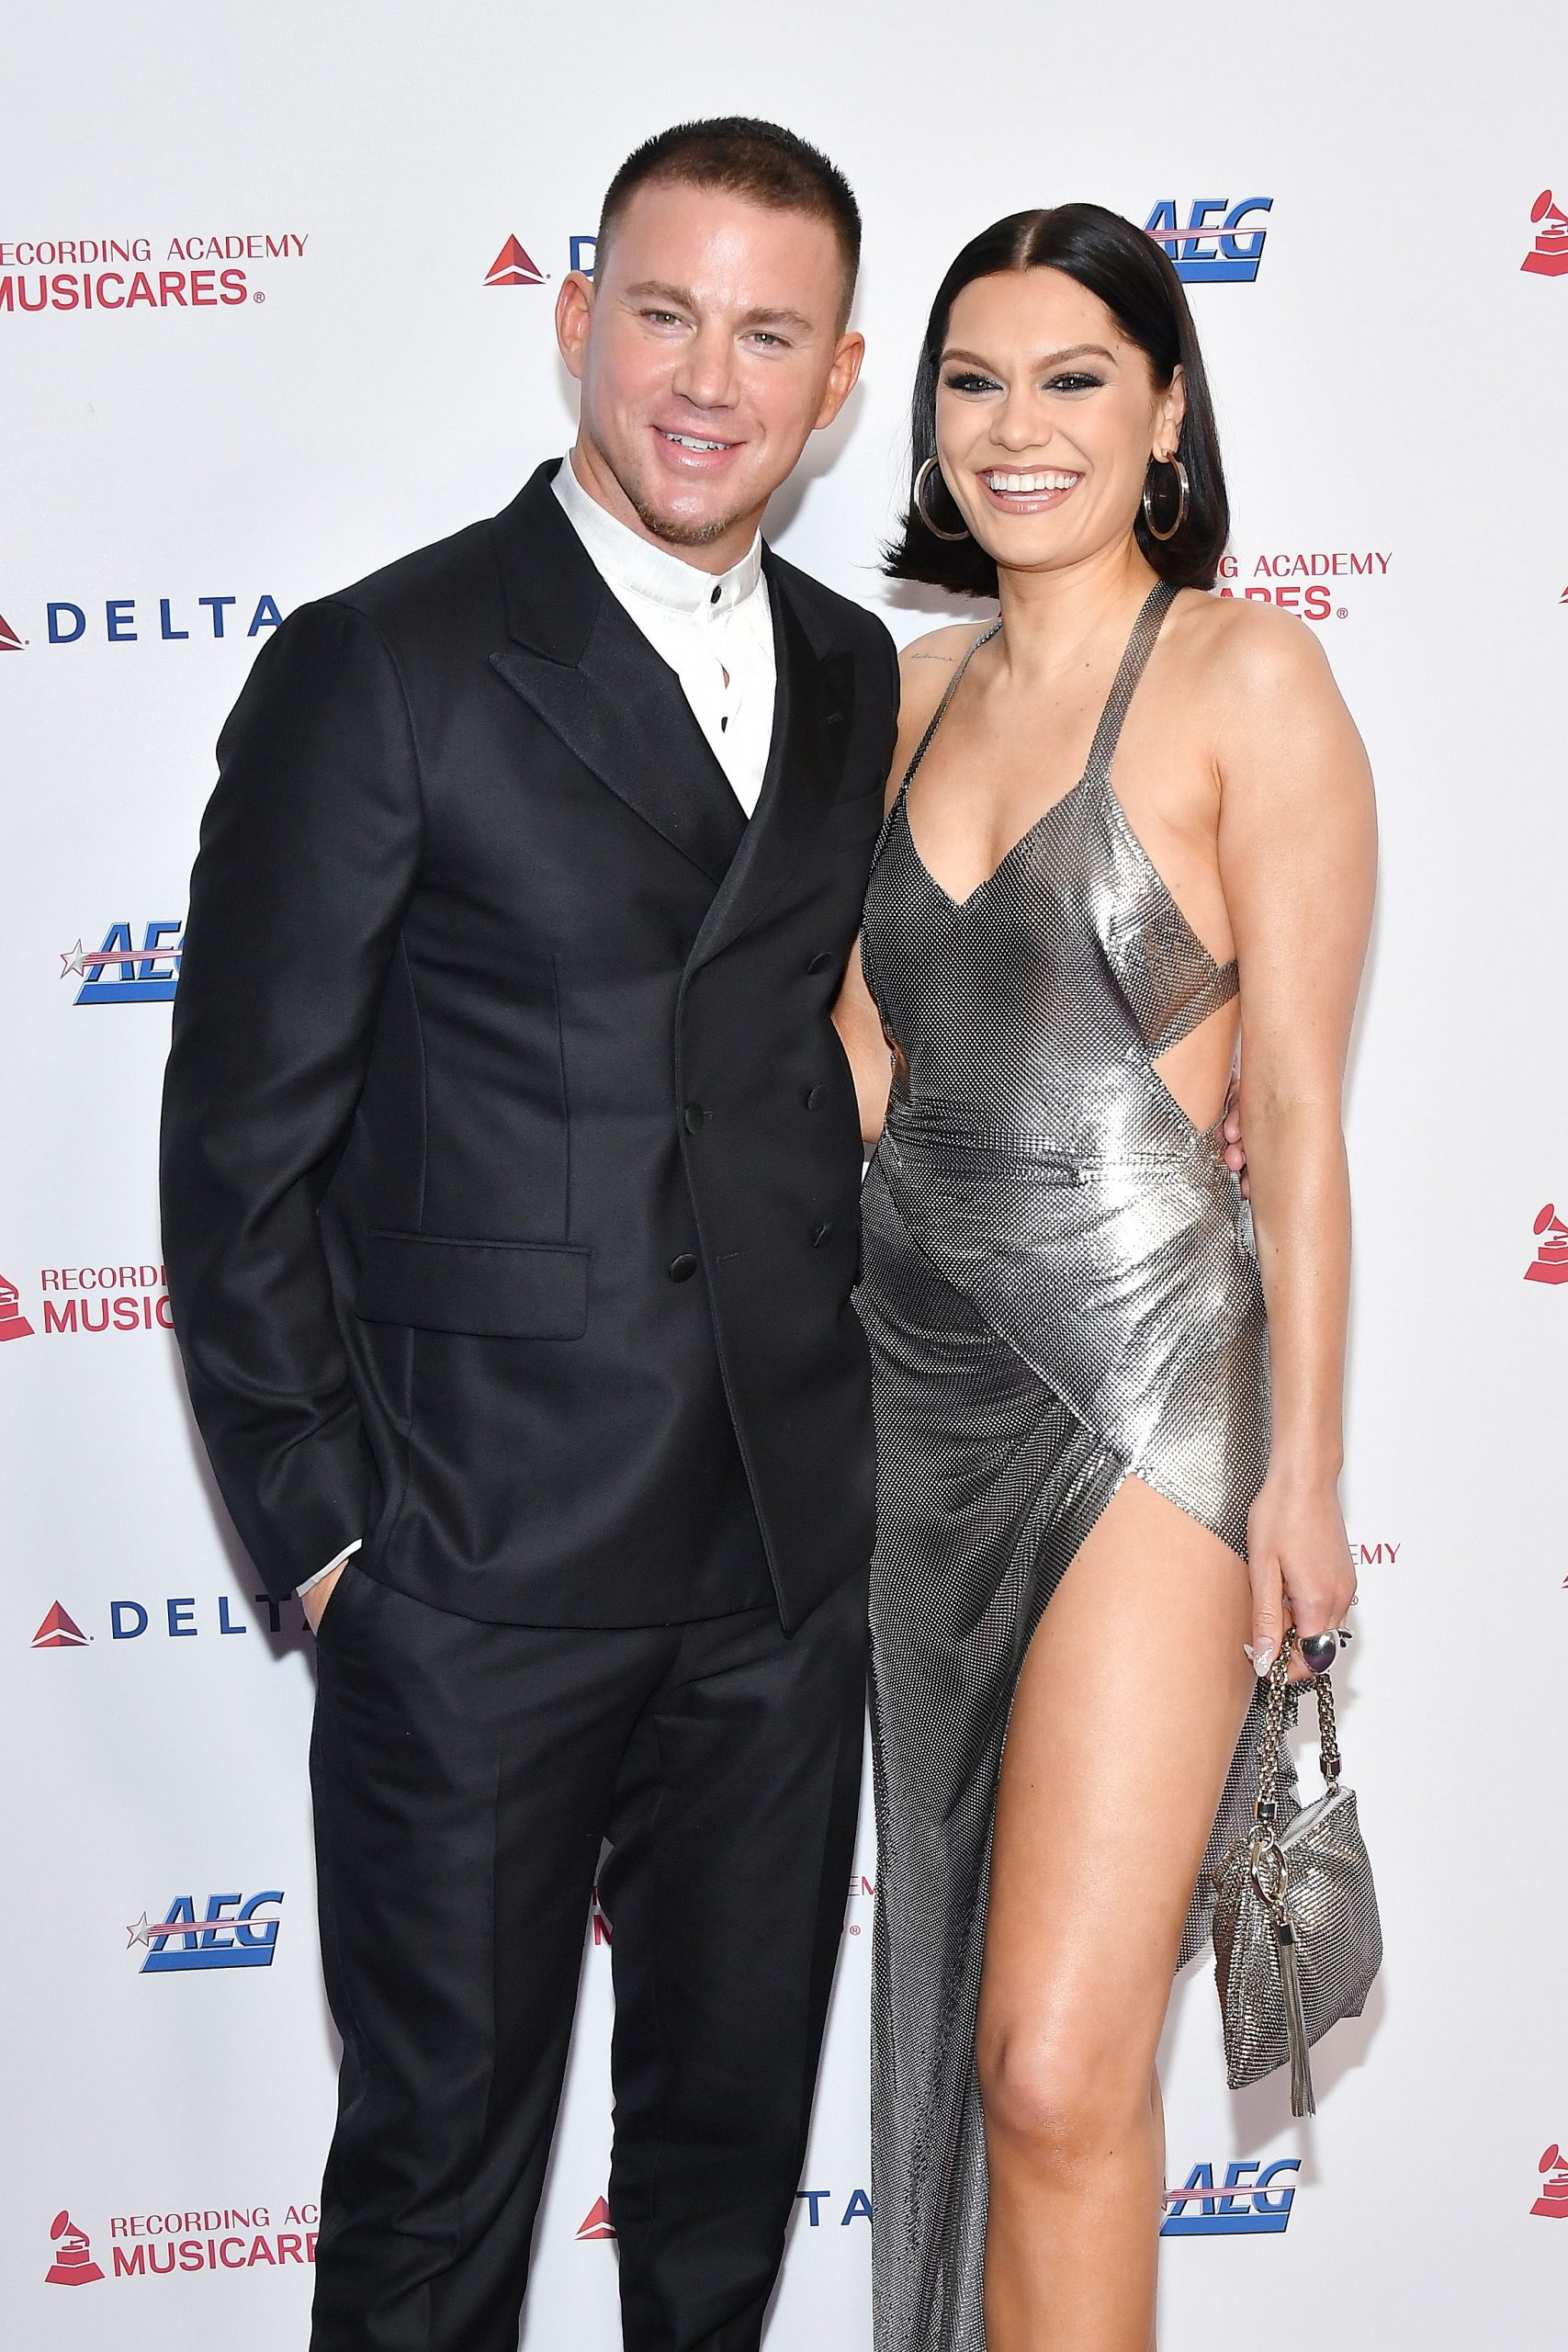 Channing Tatum's Girlfriend Jessie J